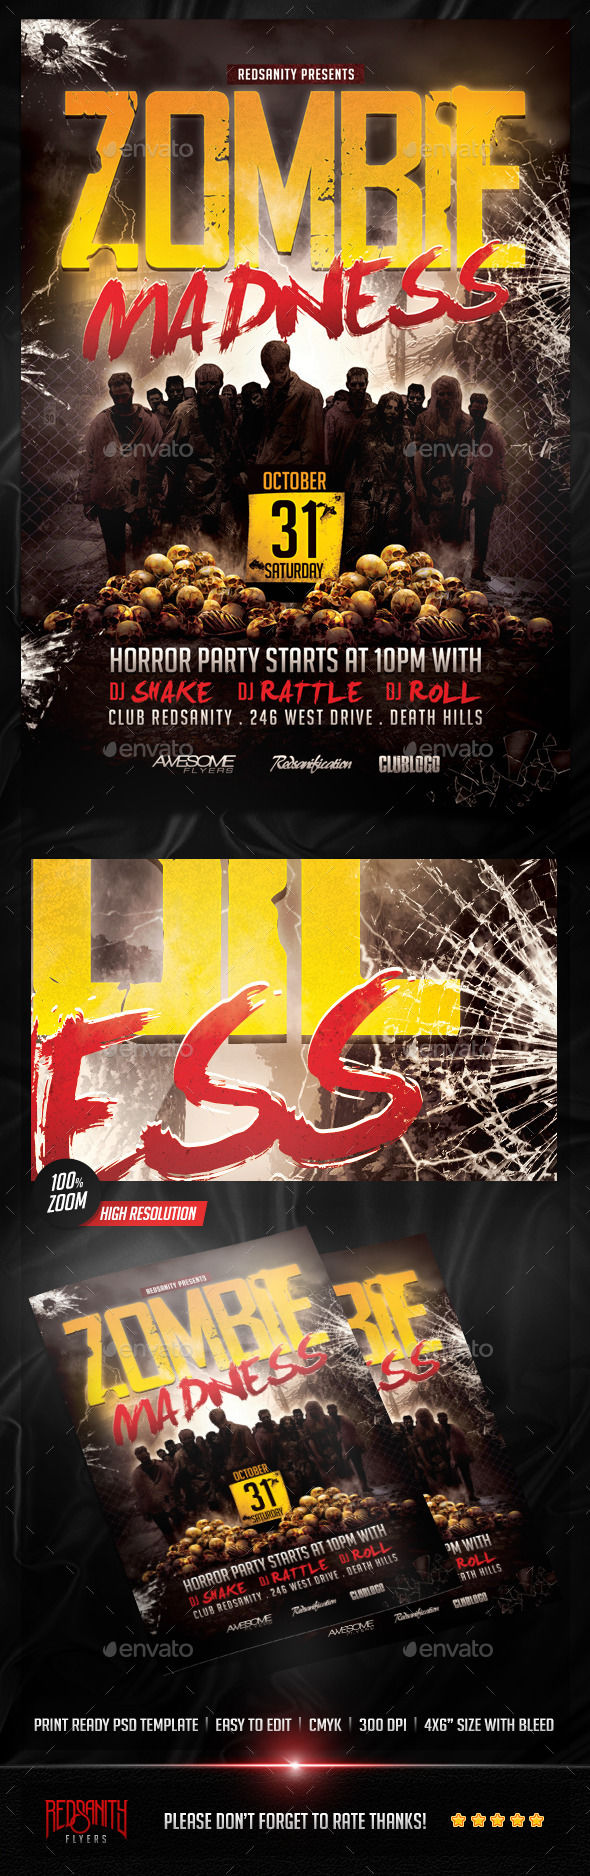 Zombie Madness Flyer by Redsanity (Halloween party flyer)